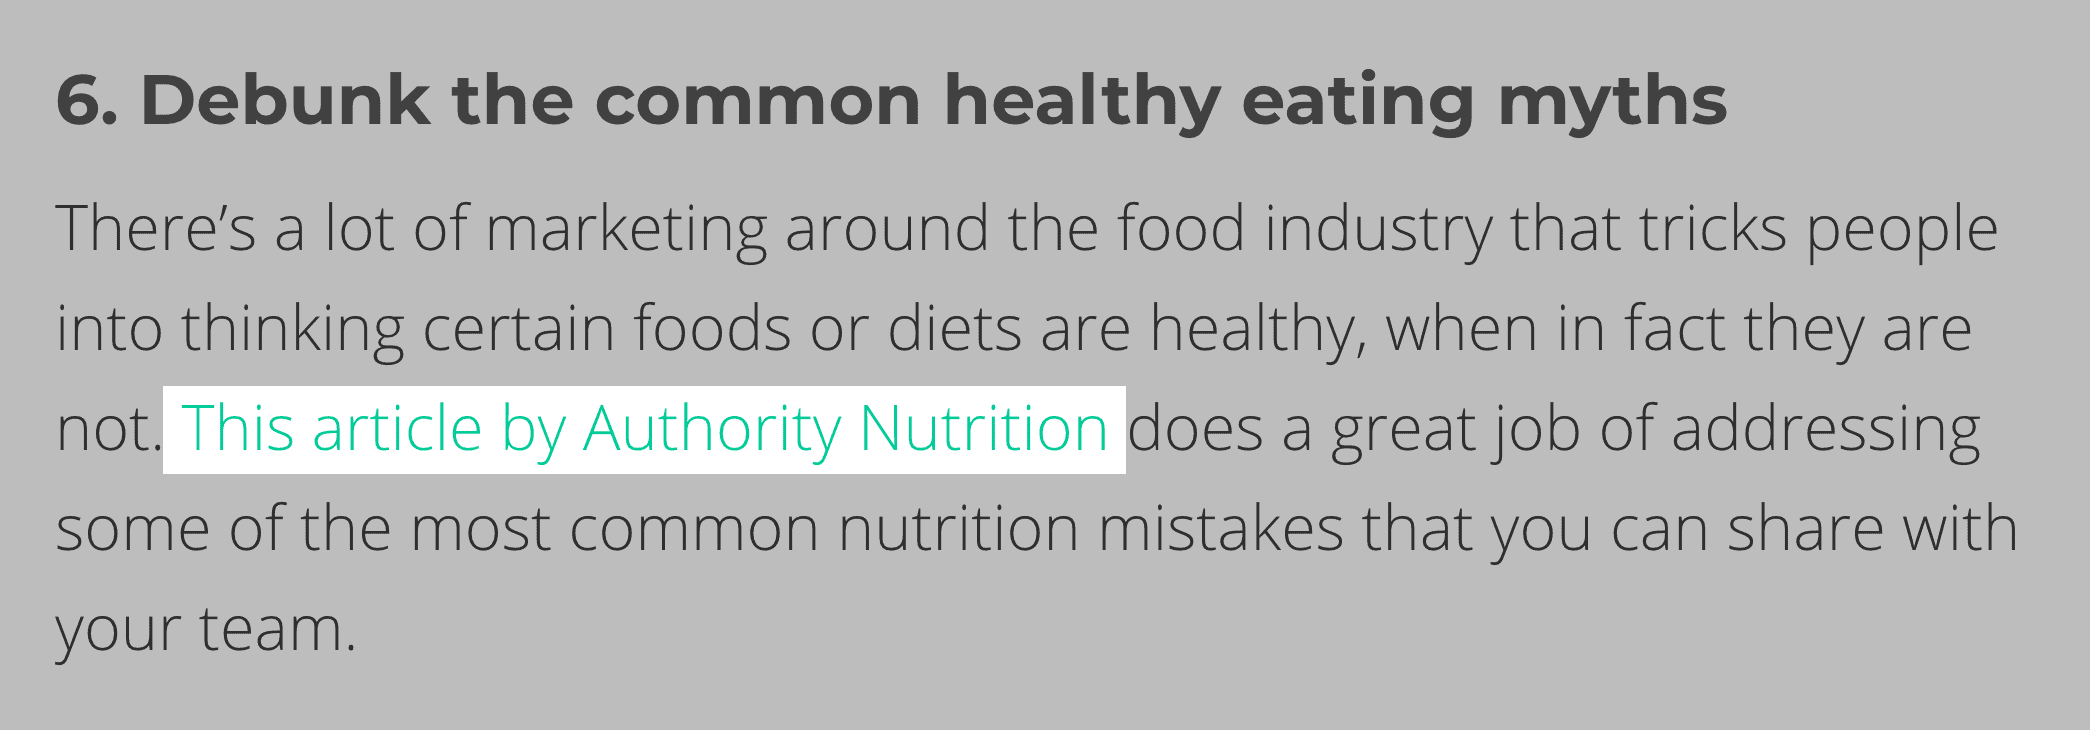 Emil – Authority Nutrition mention